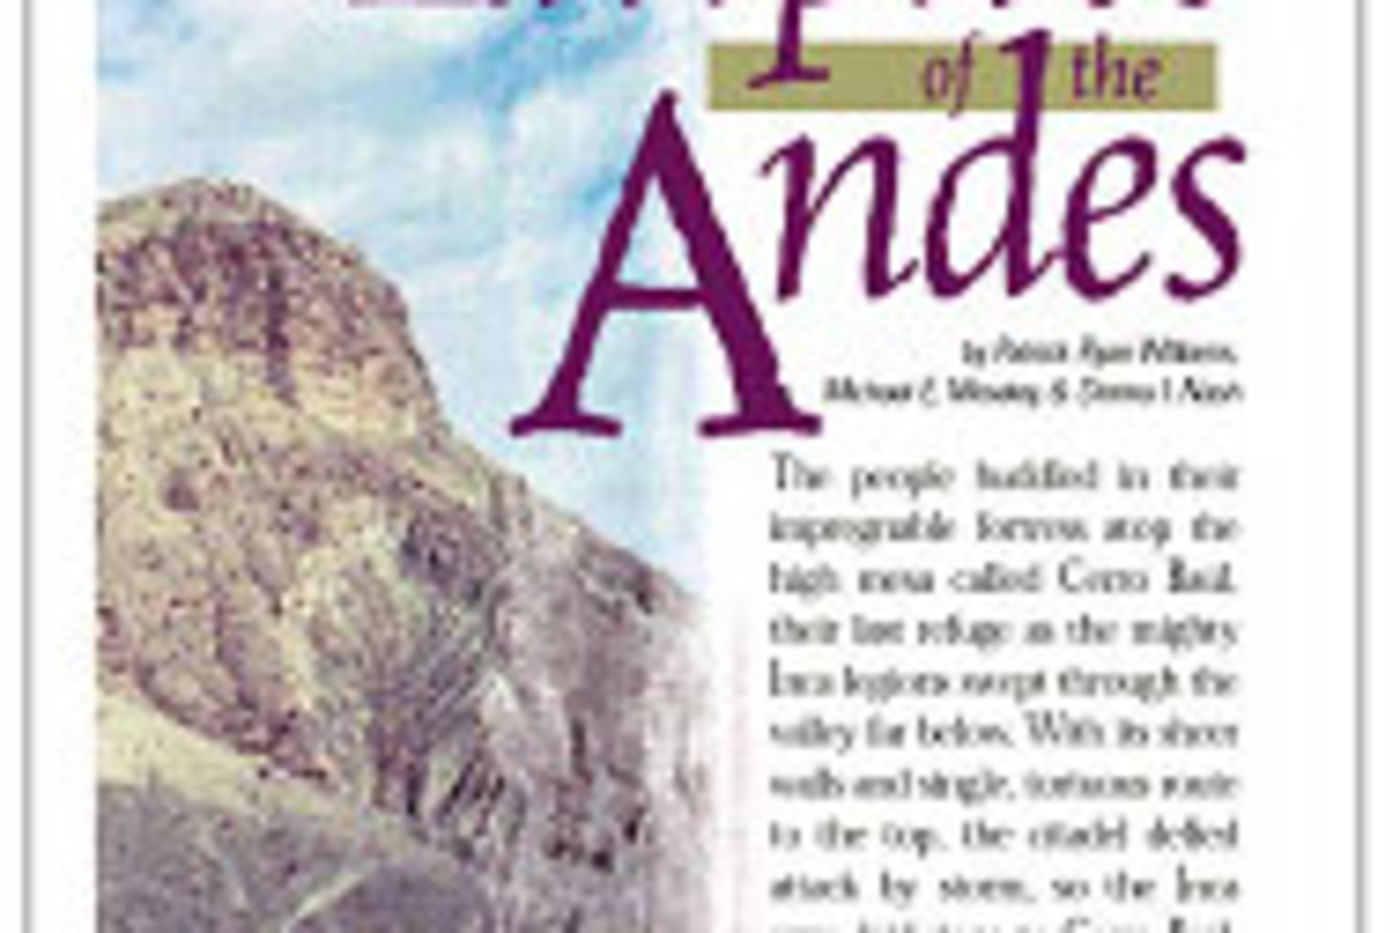 Article in the March/April 2000 issue of Scientific American Discovering Archaeology magazine